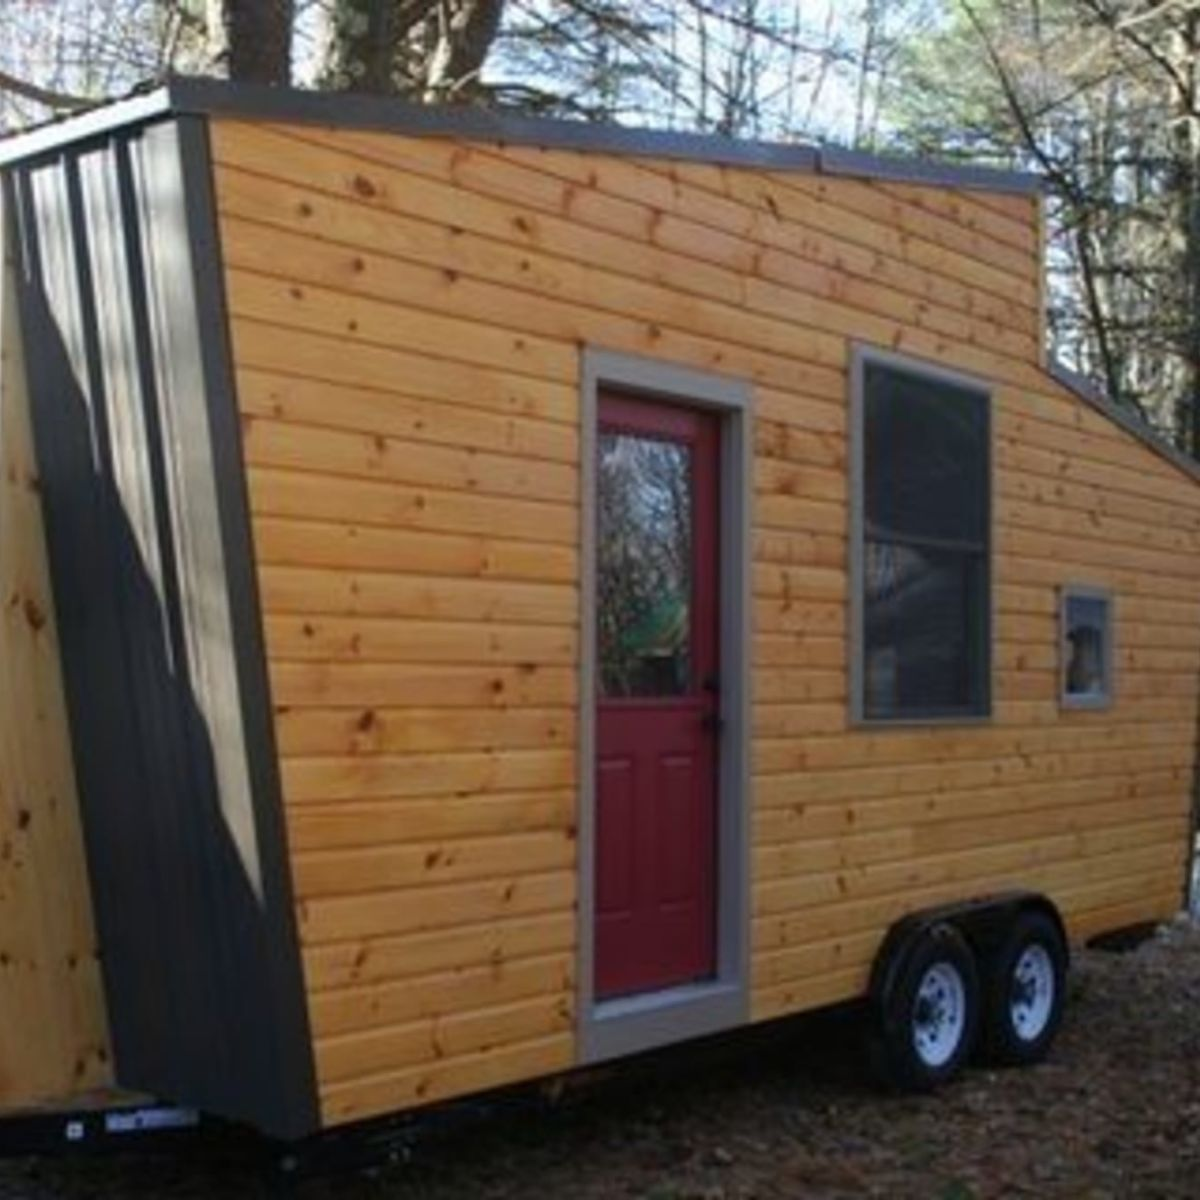 Bantam Pine TIny Home - shell or completed - Tiny House ...